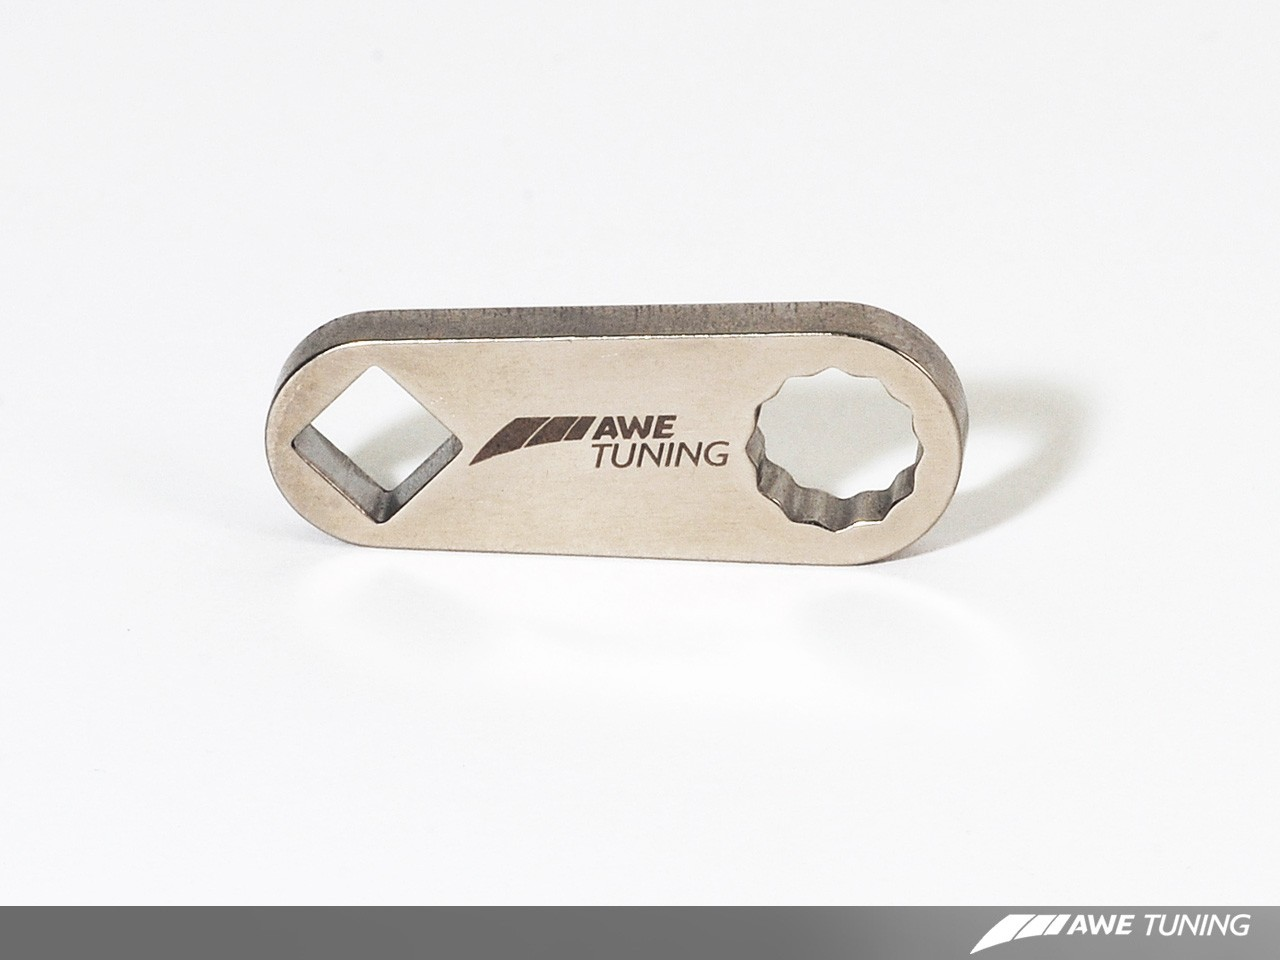 AWE Tuning Downpipe Removal Tool - 6510-11012